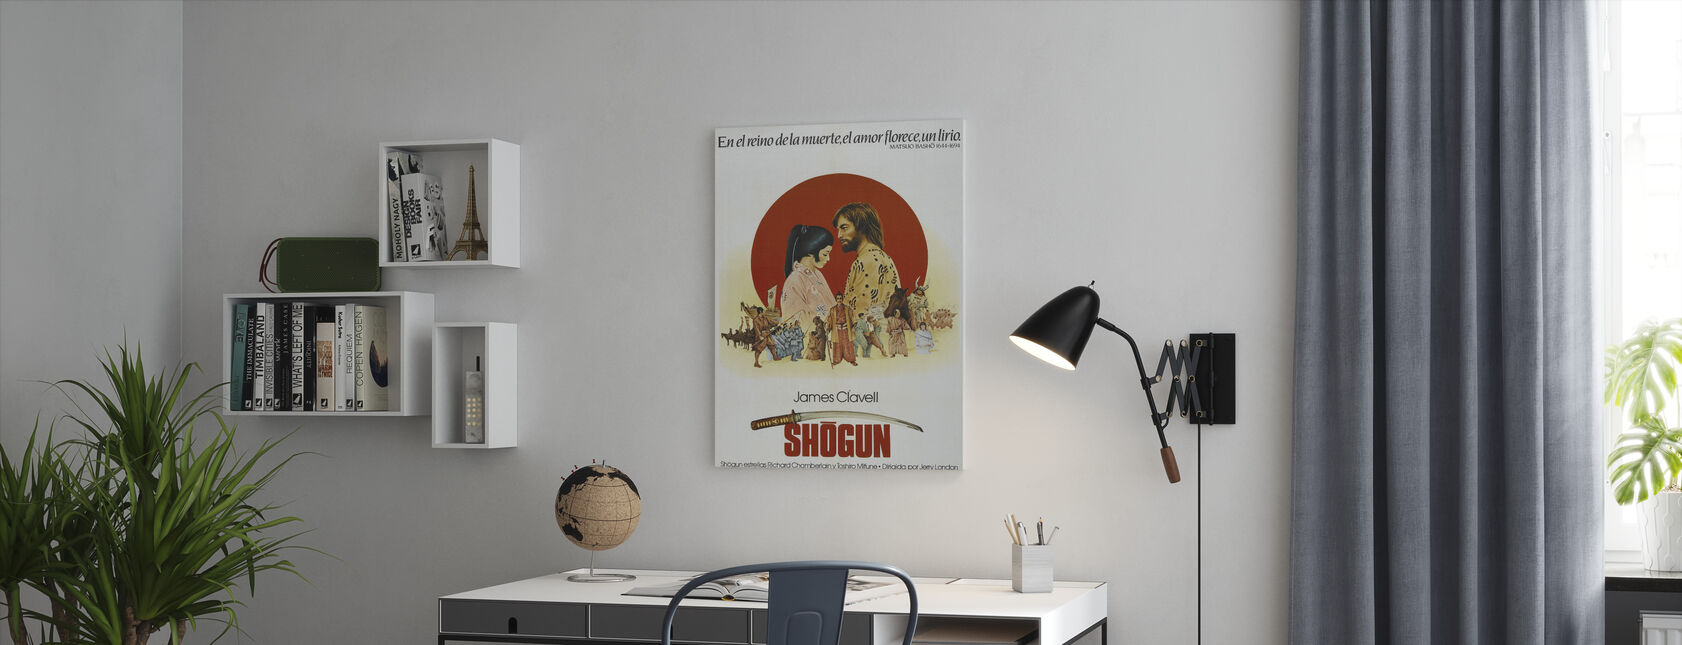 Argentinan Movie Poster Shogun - Canvas print - Office